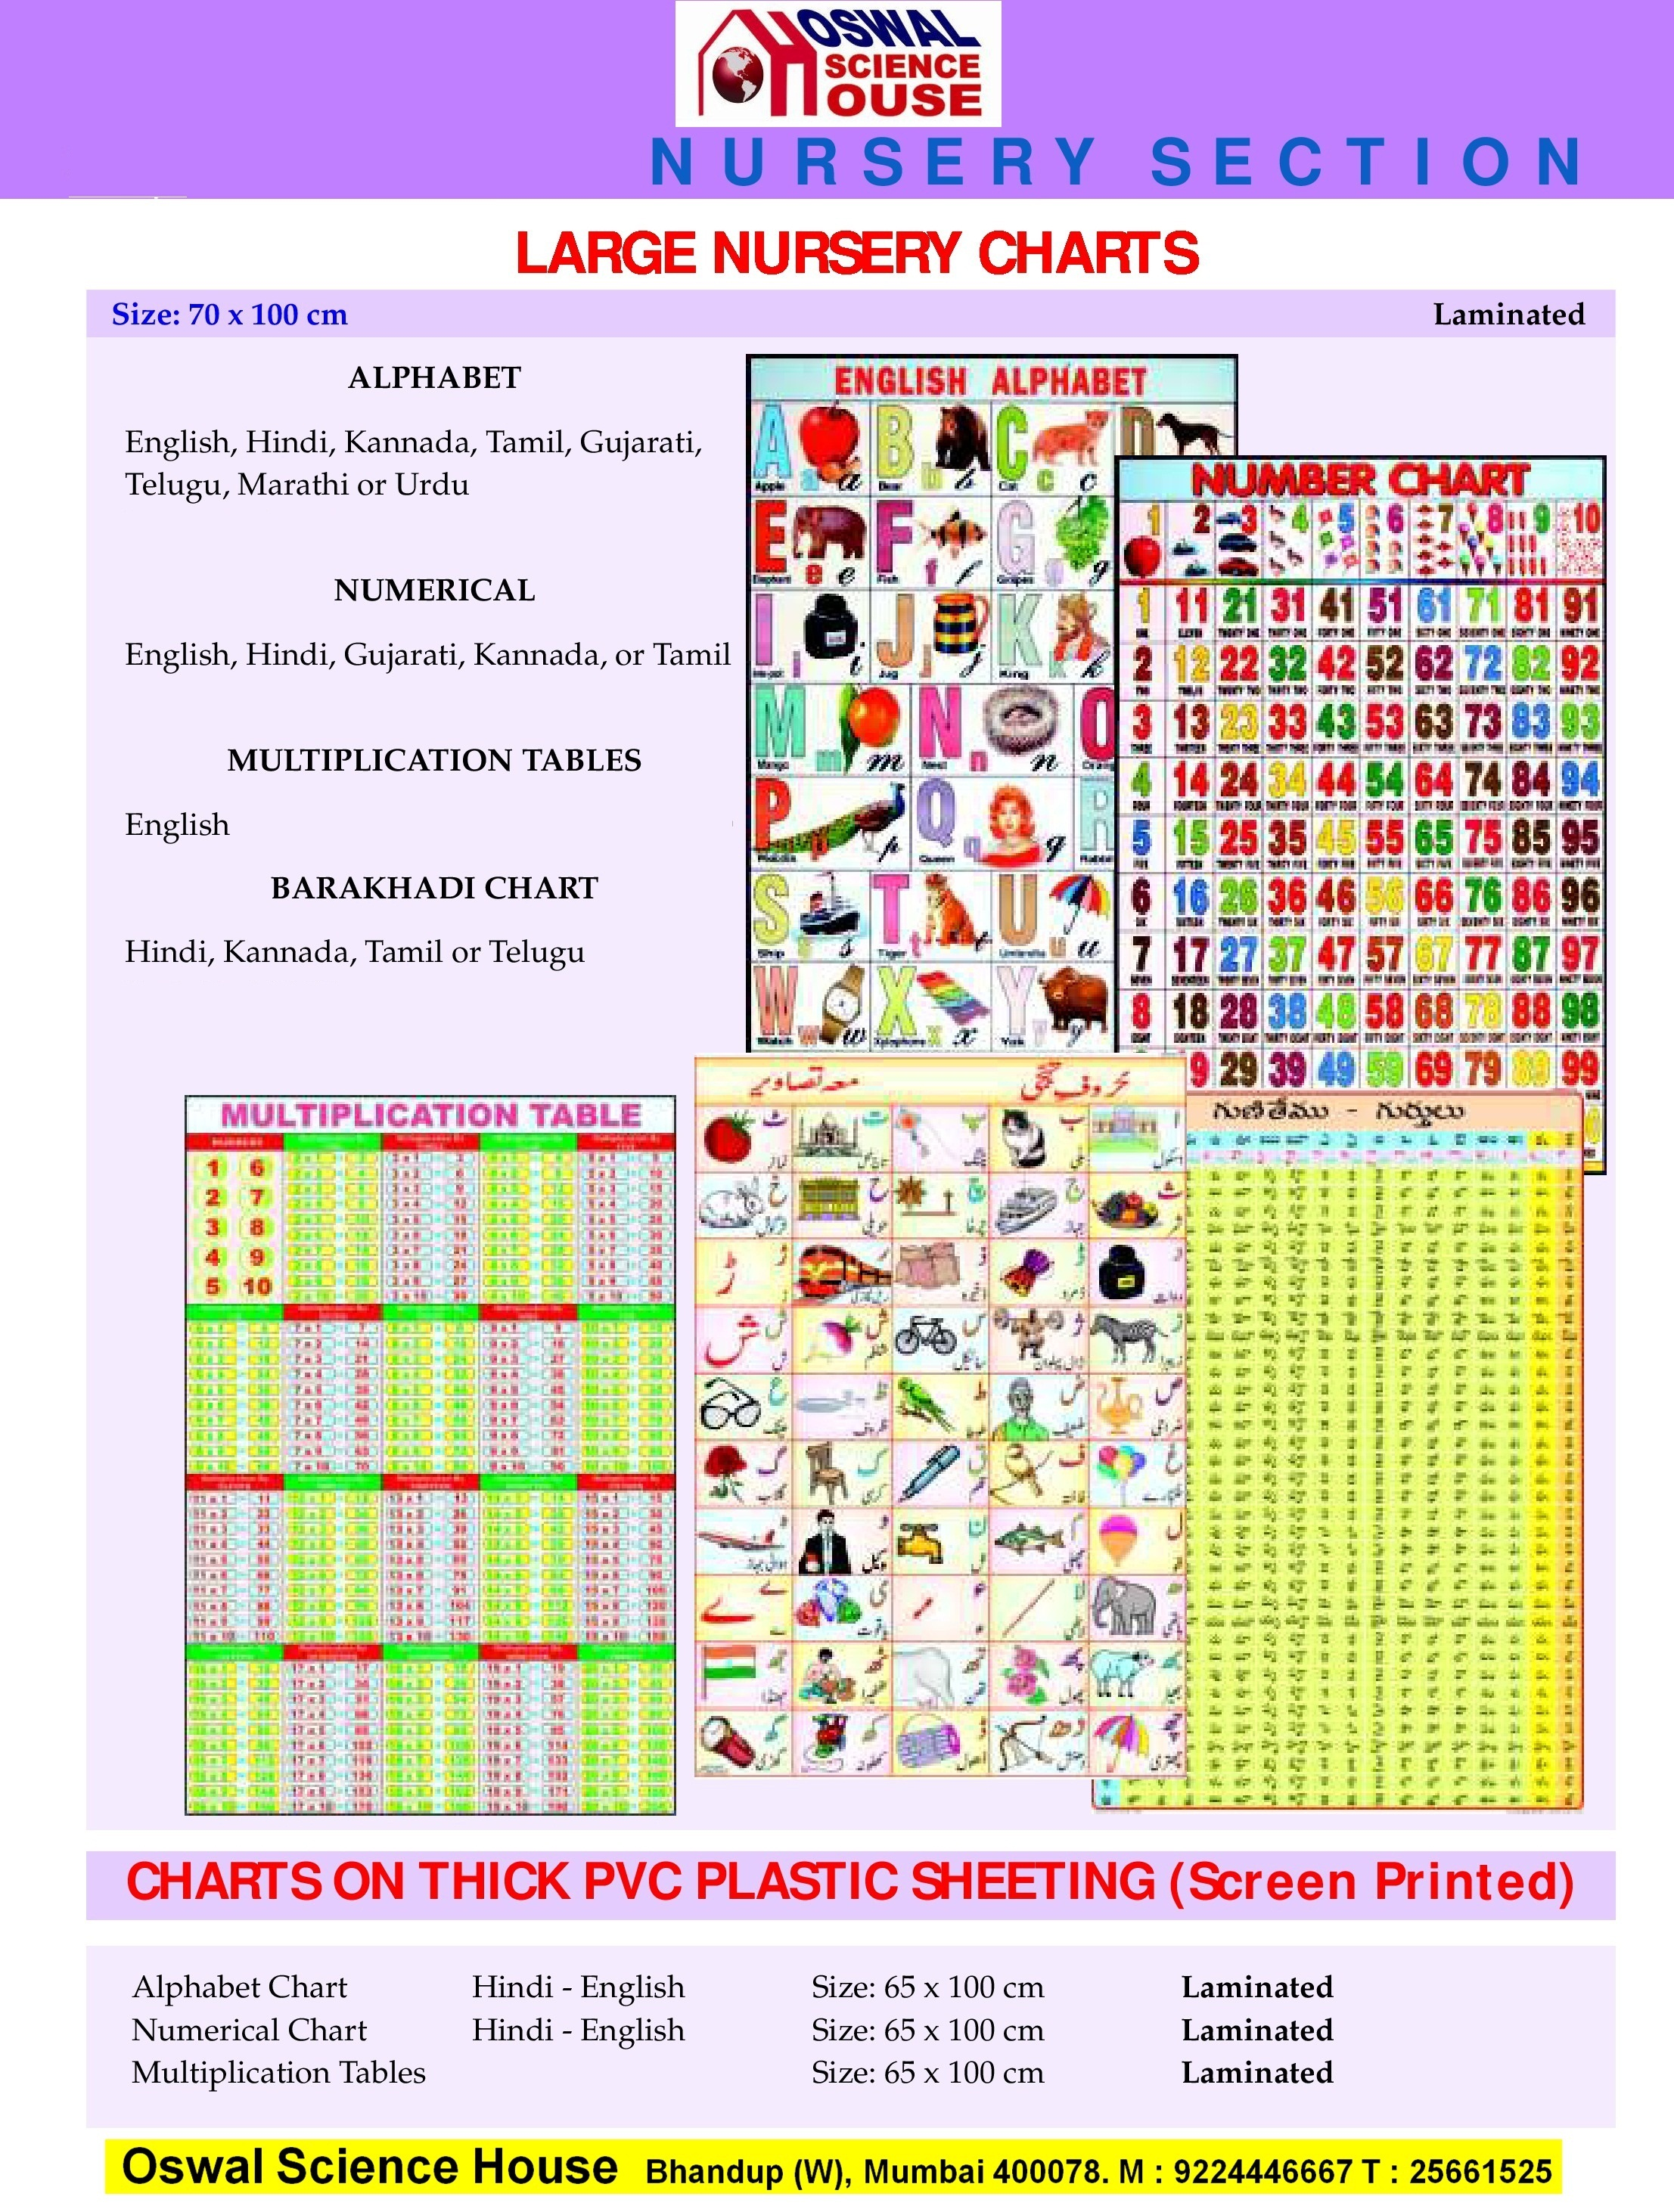 Oswal science house nursery section for Nursery charts